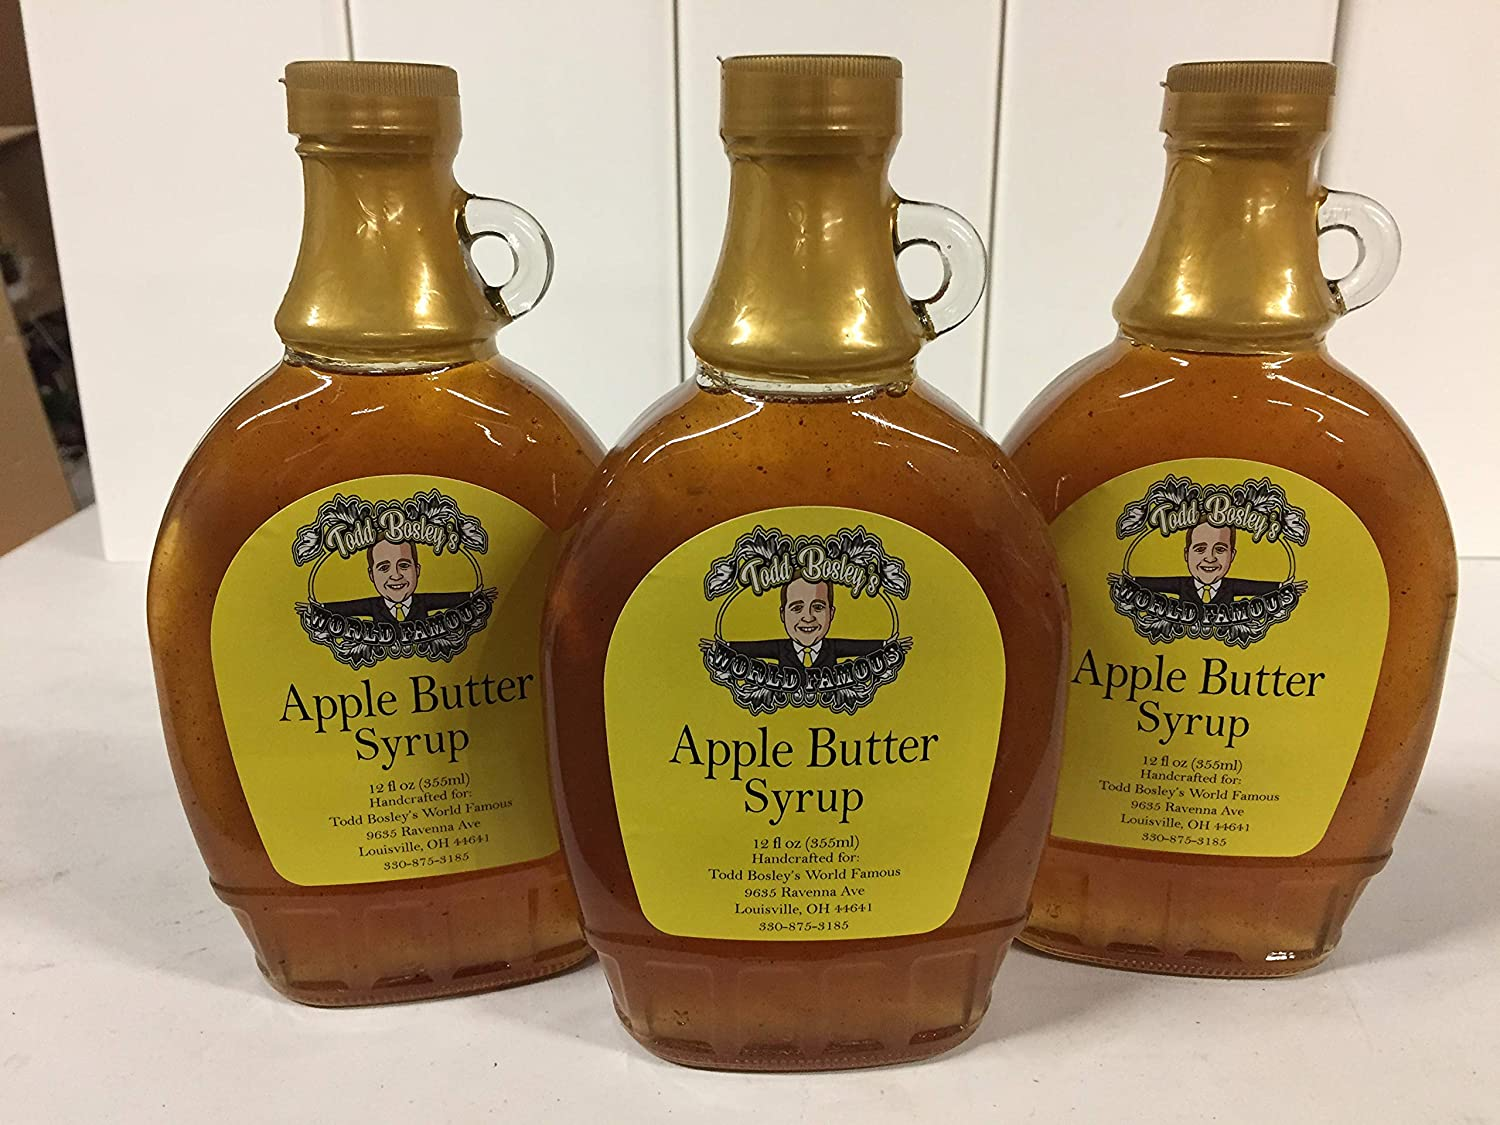 Todd Bosley's World Famous Apple San Max 83% OFF Francisco Mall Syrup 3 Pack Butter